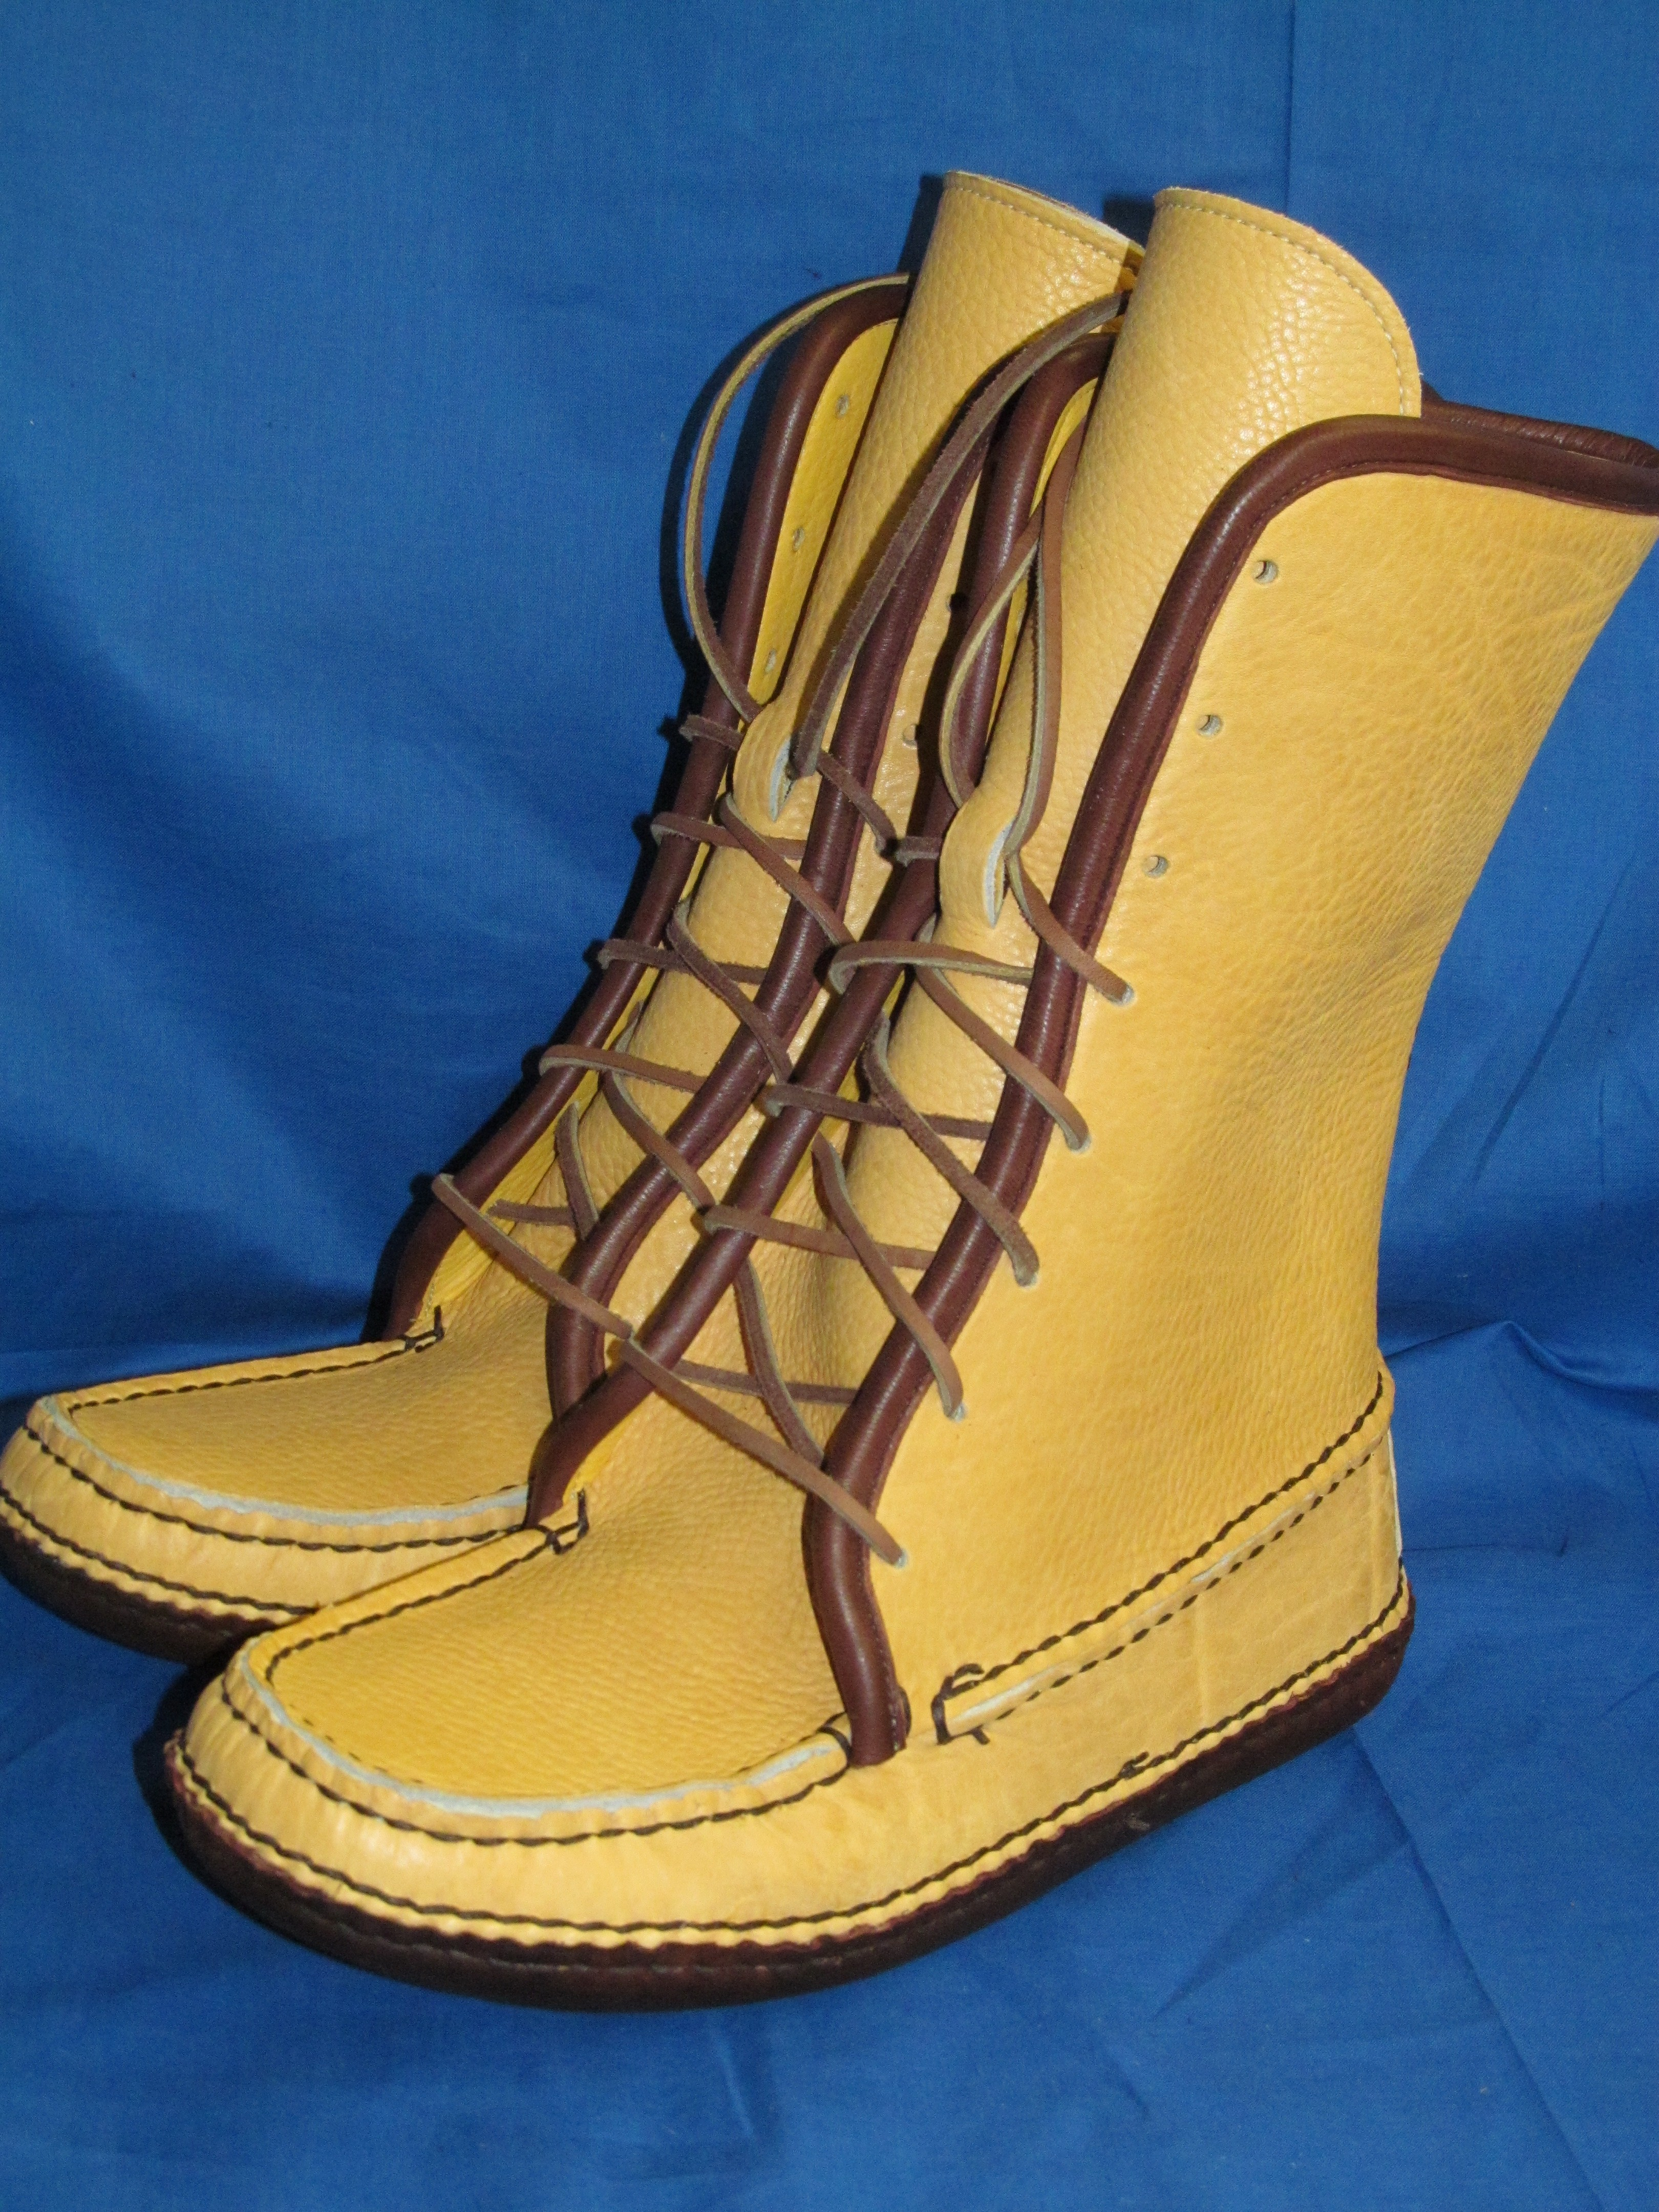 Eight Eye Lace Boot Carl Dyers Original Moccasins